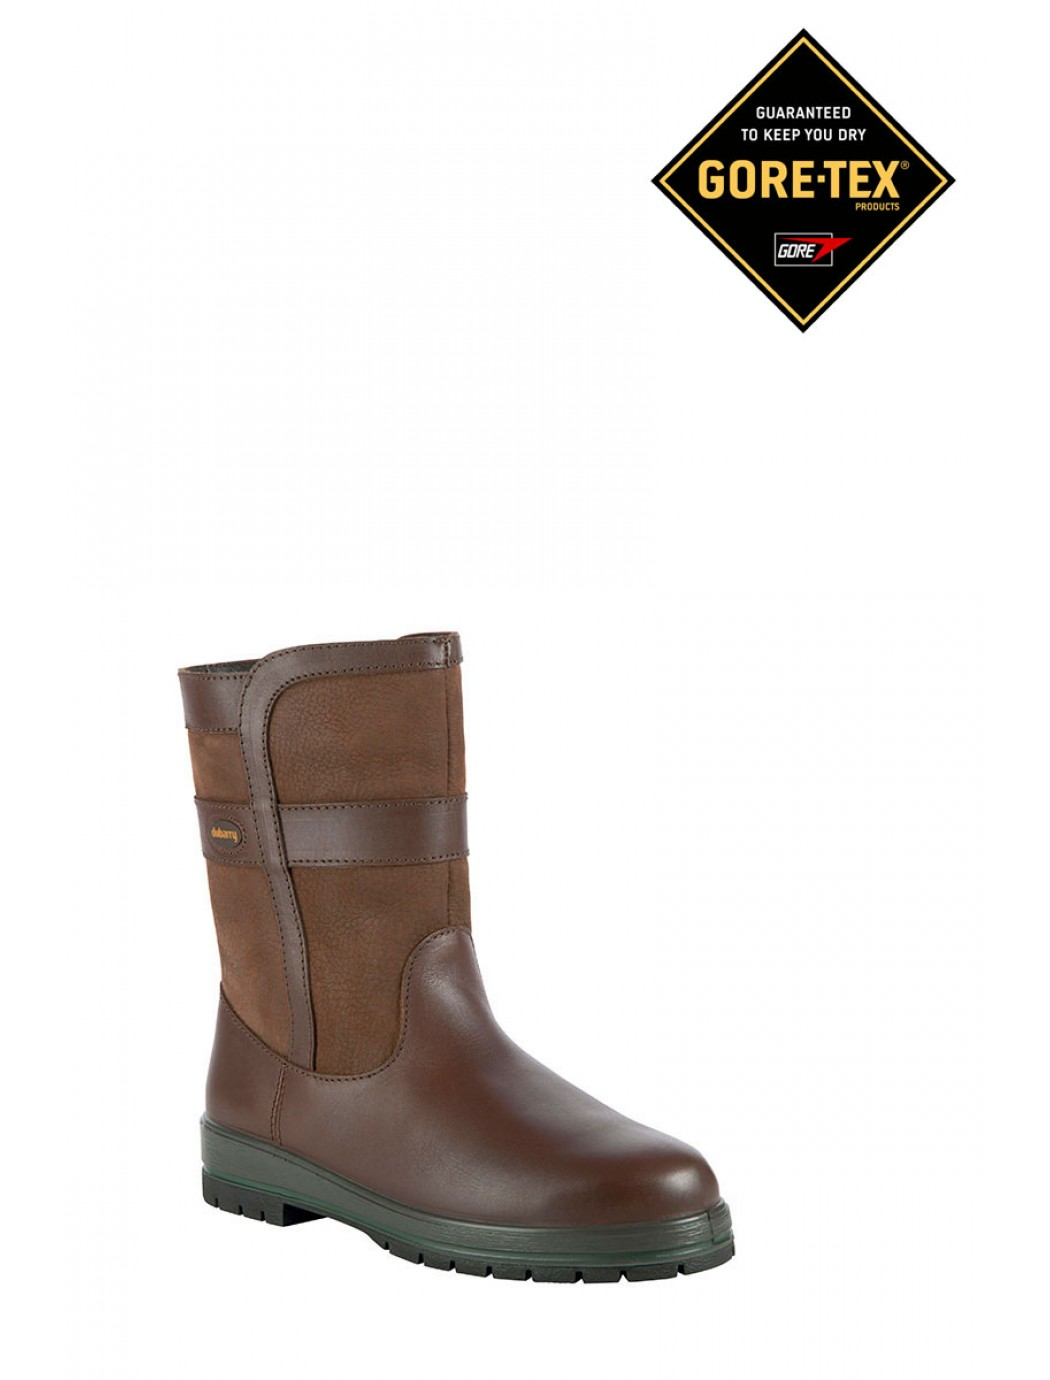 roscommon-country-boots-walnut 6